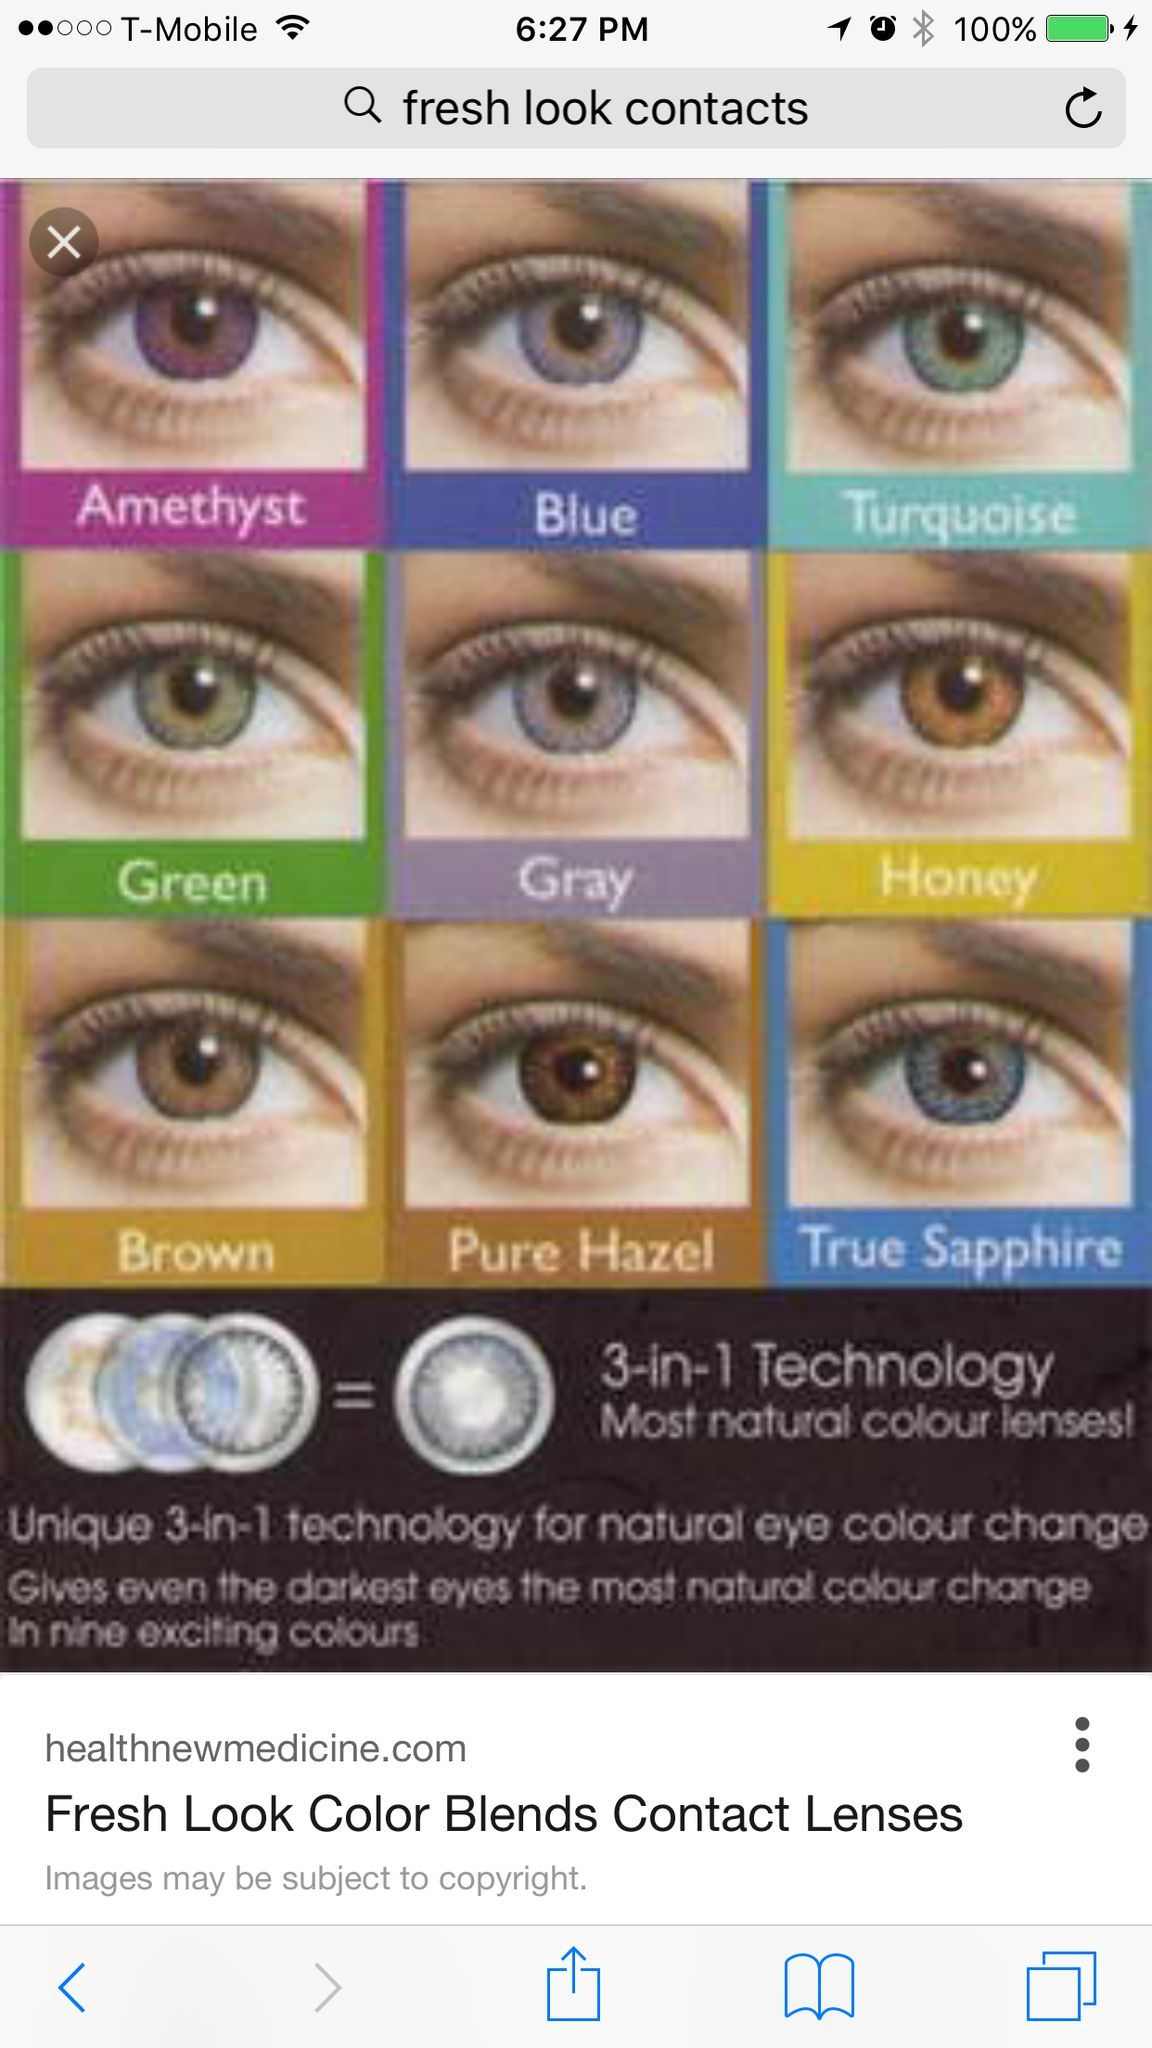 Non Prescription Color Contact Reusable Up To 3 Months With Proper Care Fast And Colored Contacts Contact Lenses For Brown Eyes Prescription Colored Contacts